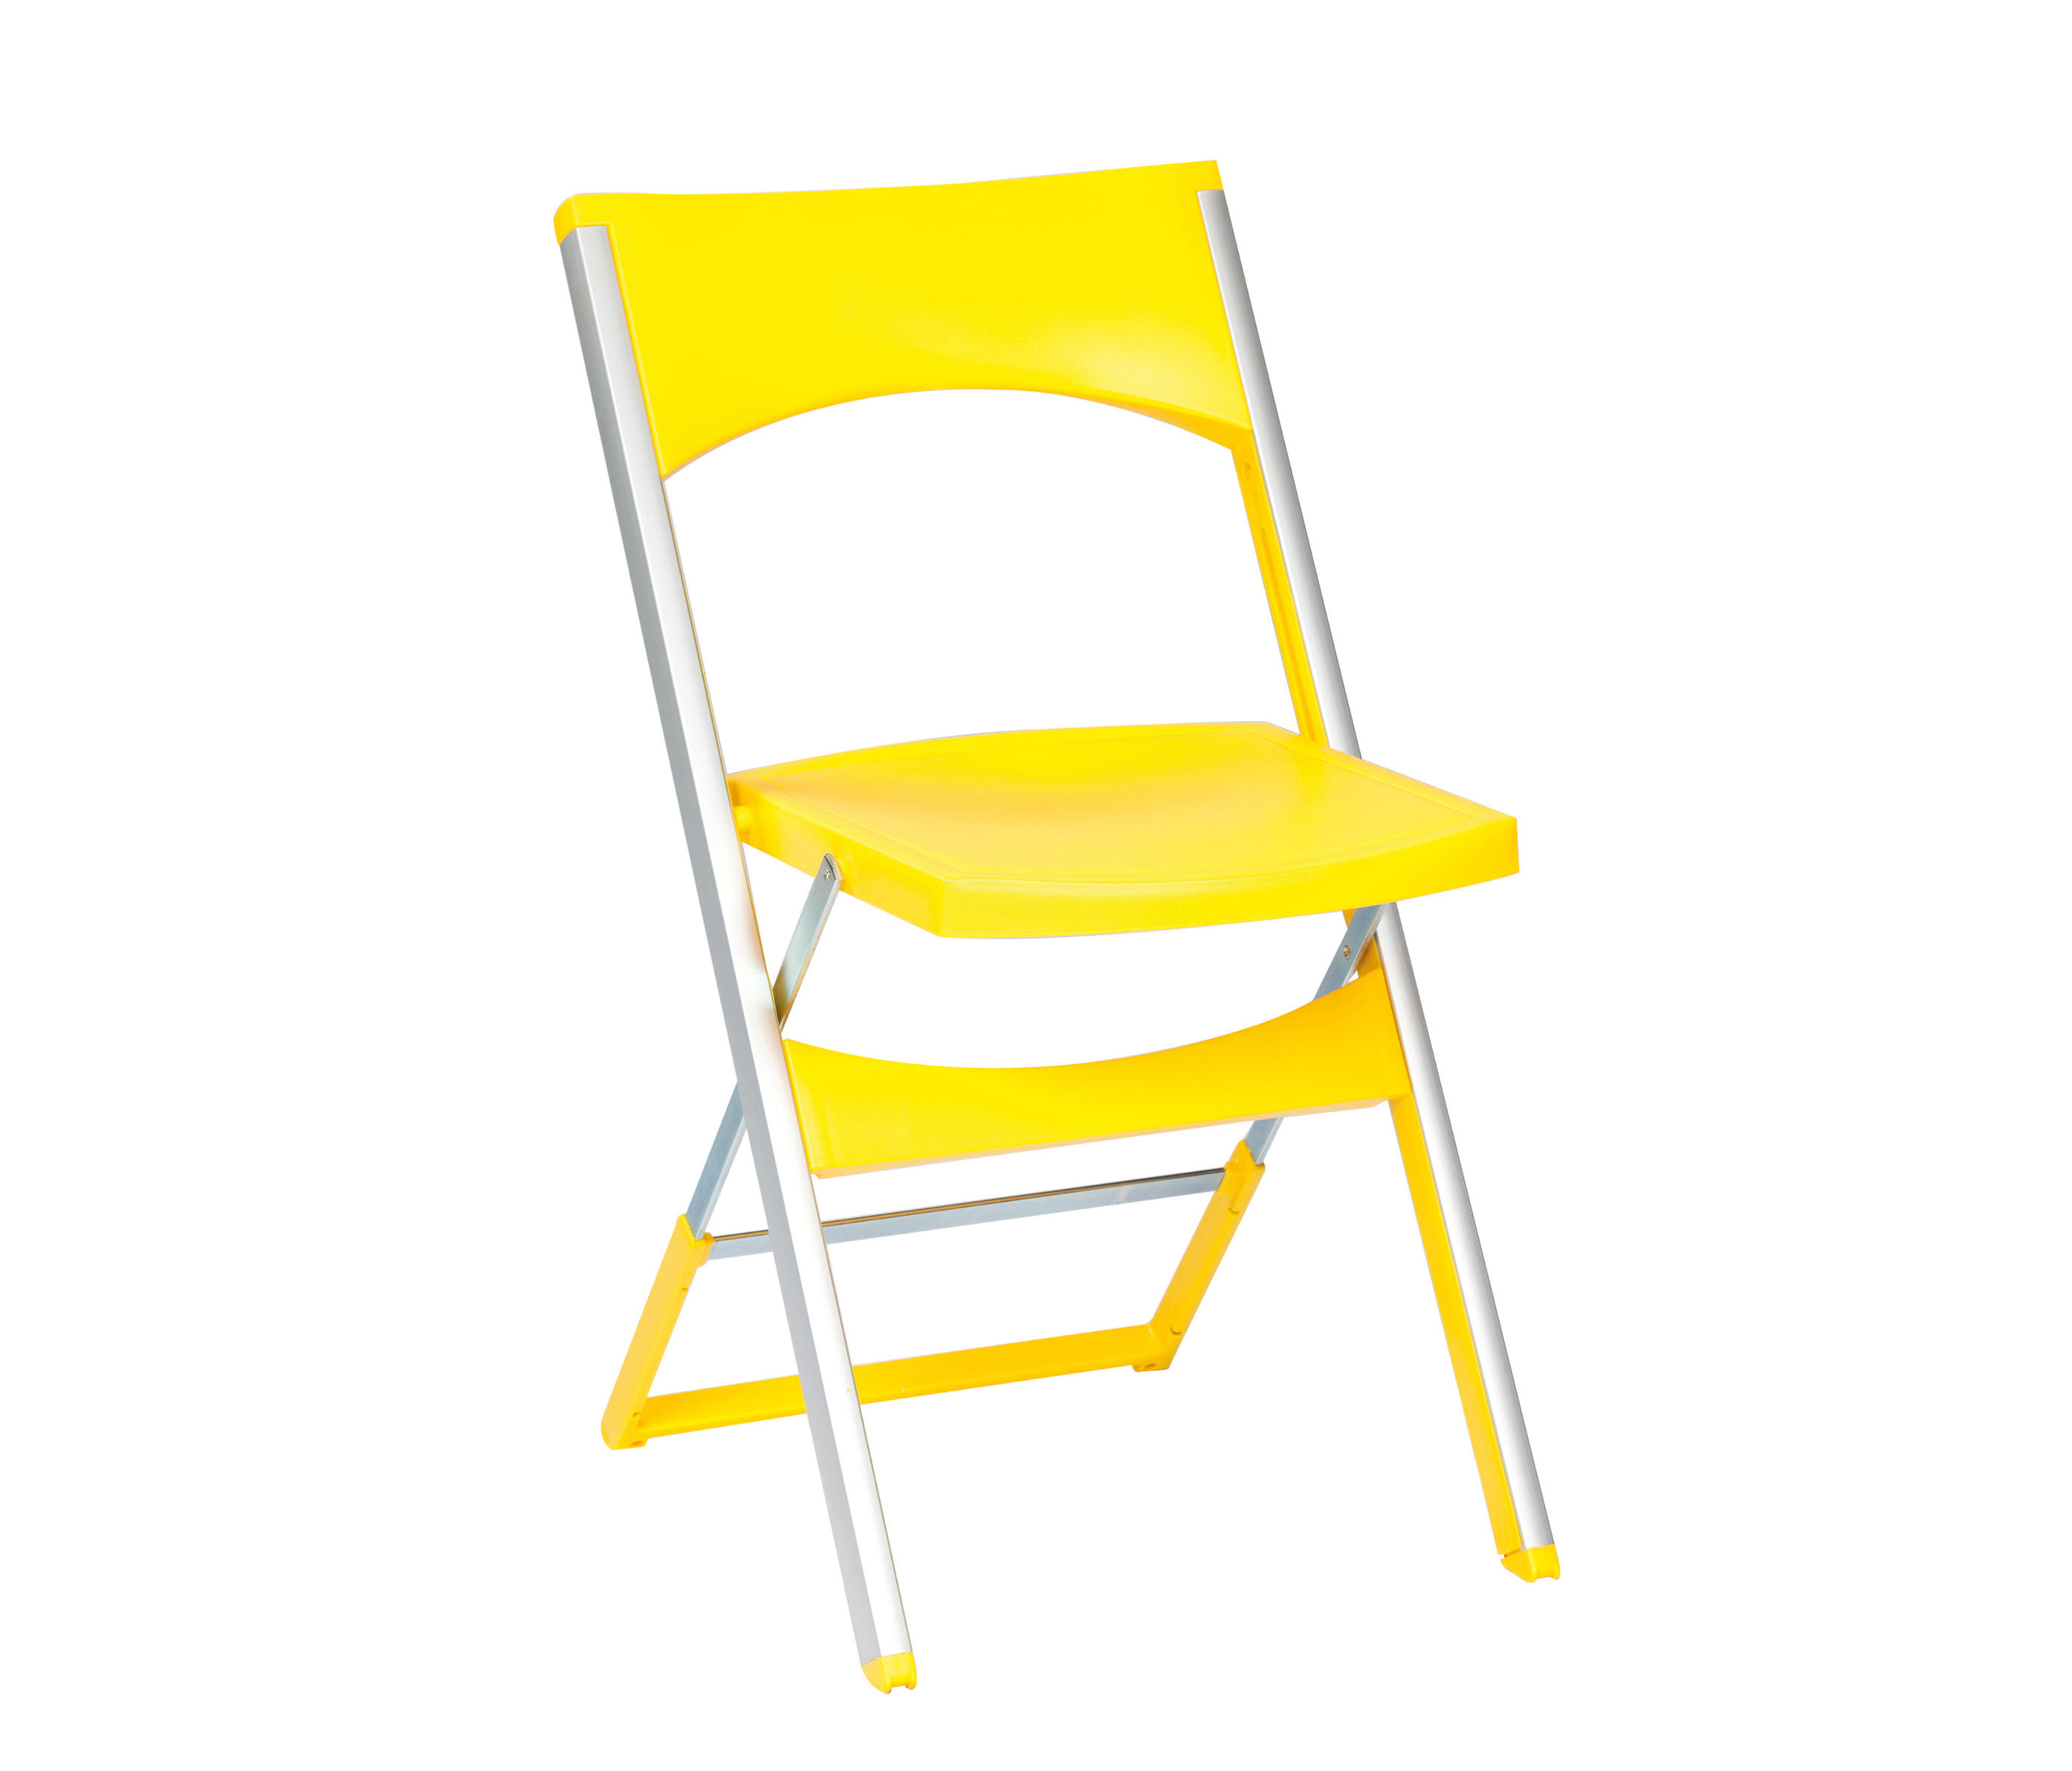 PACT Multipurpose chairs from Gaber